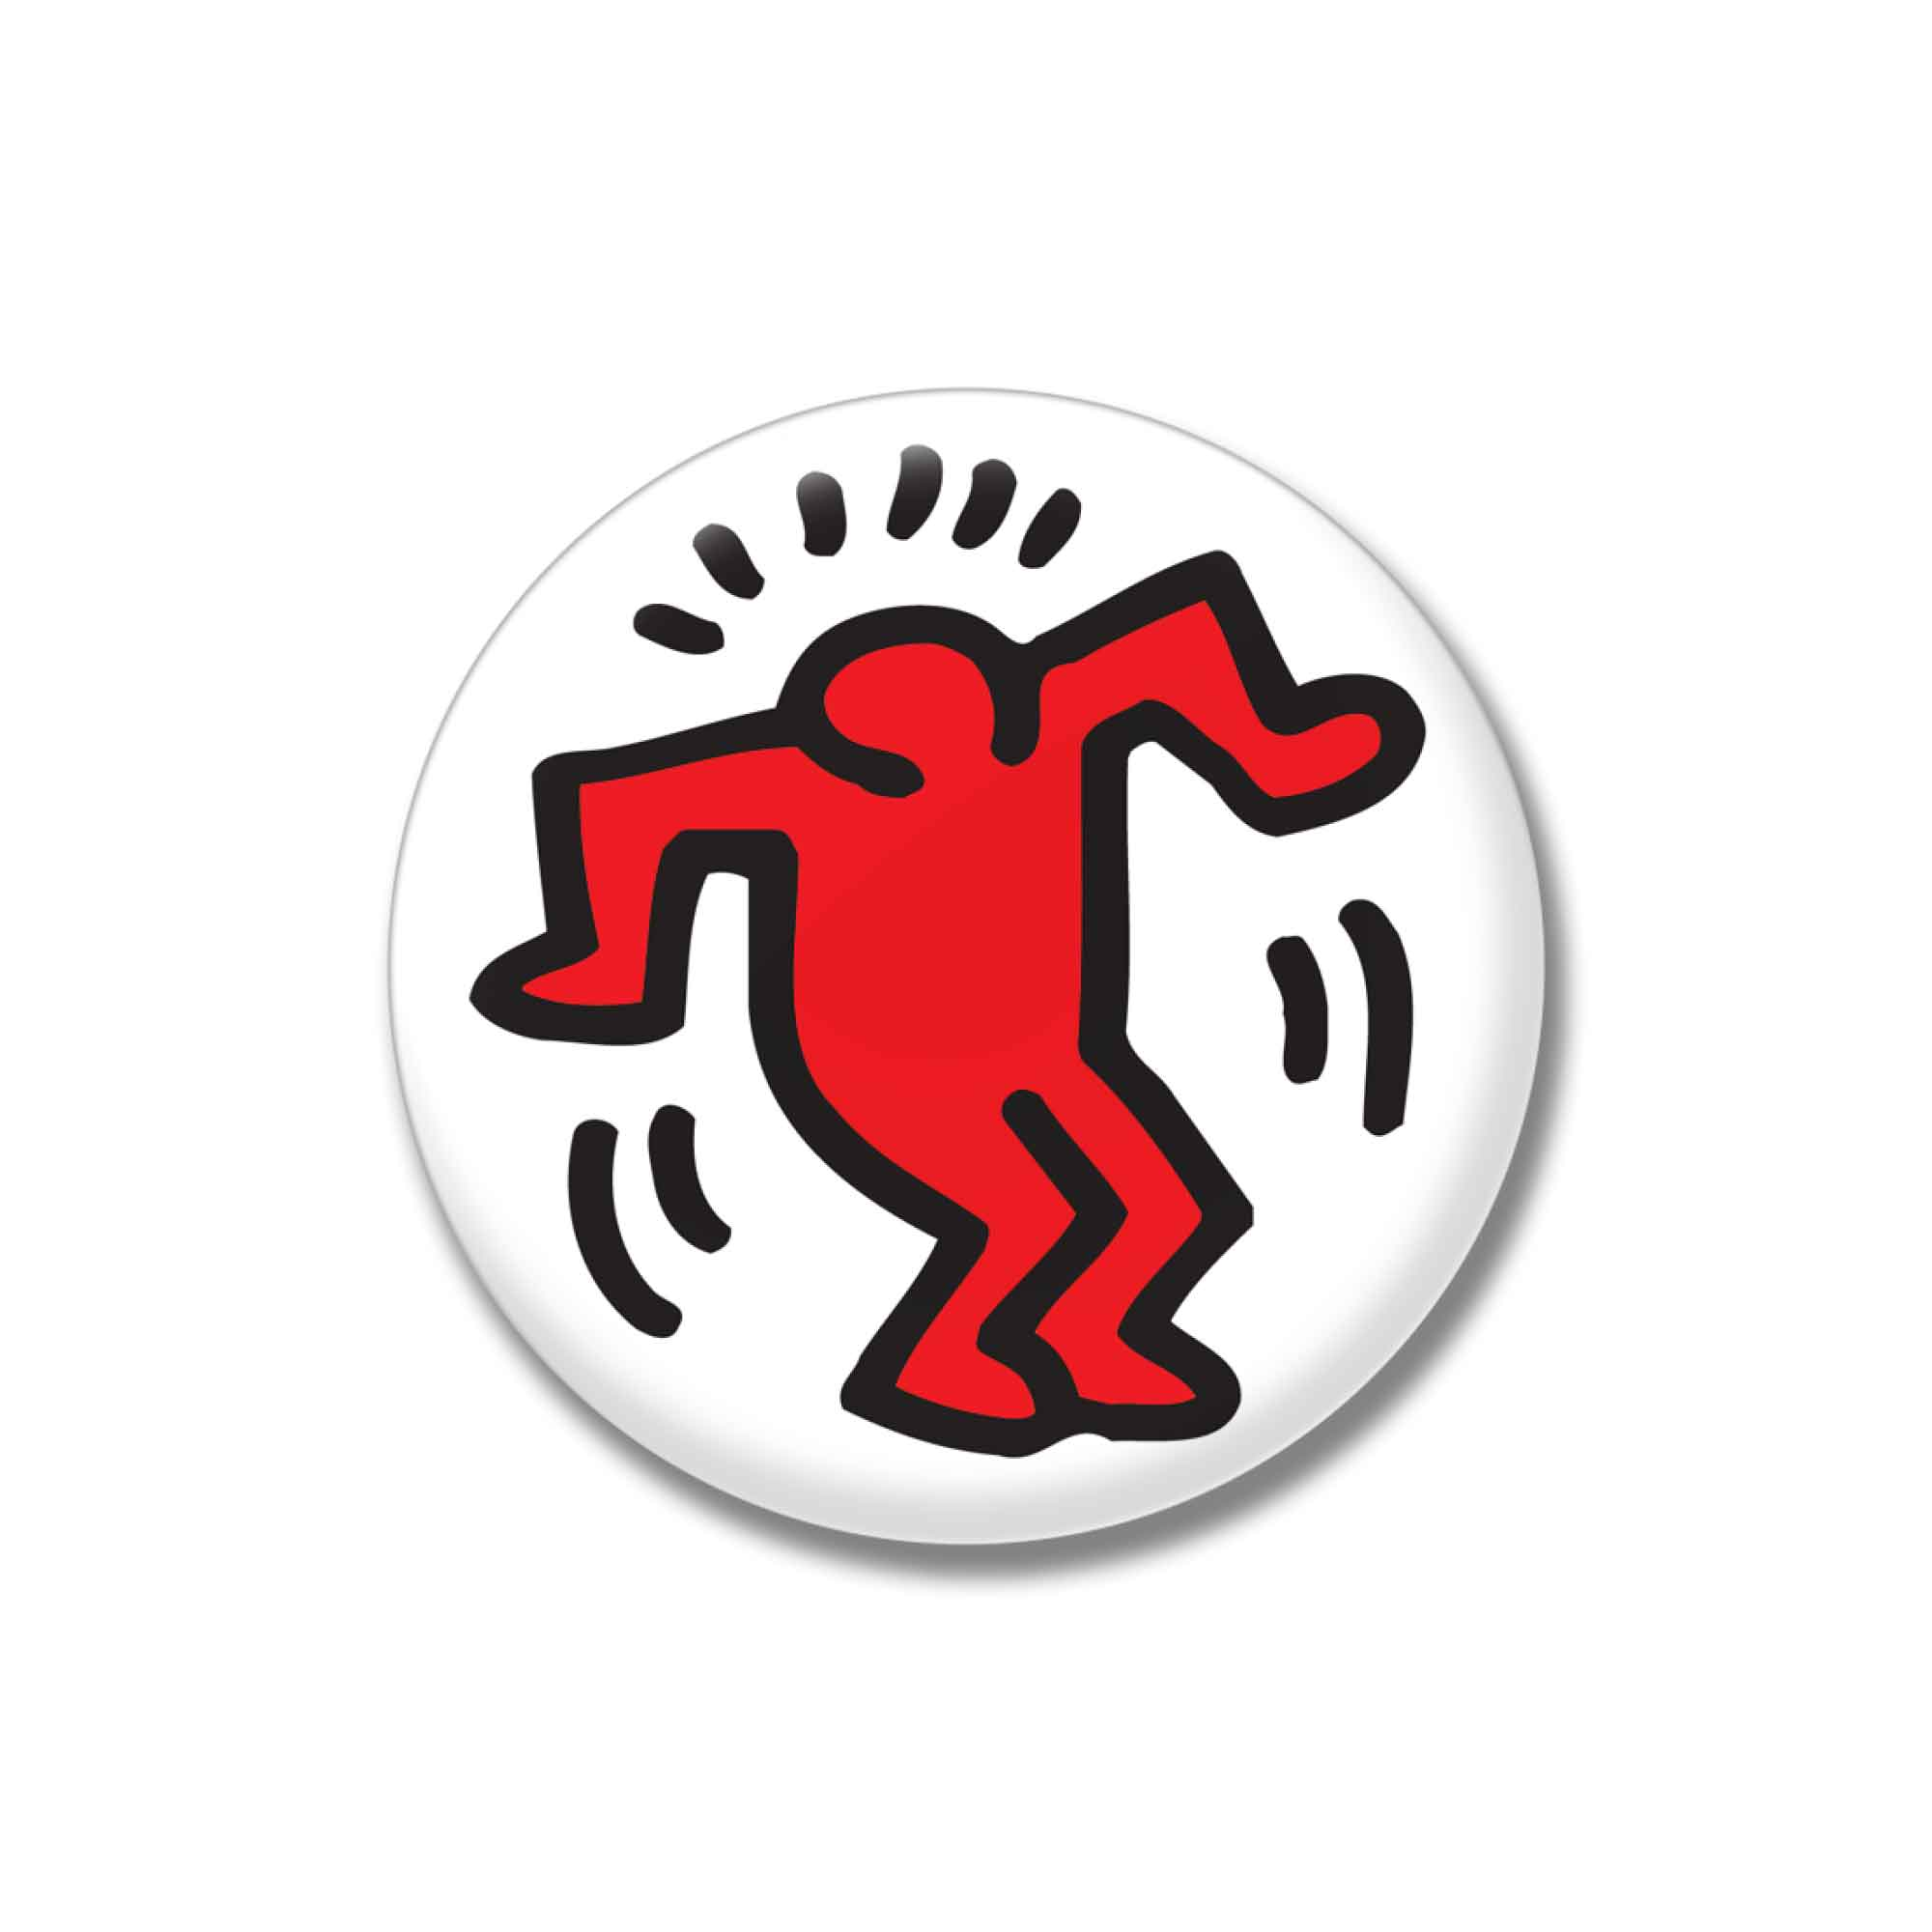 Keith Haring - Dancing Figure